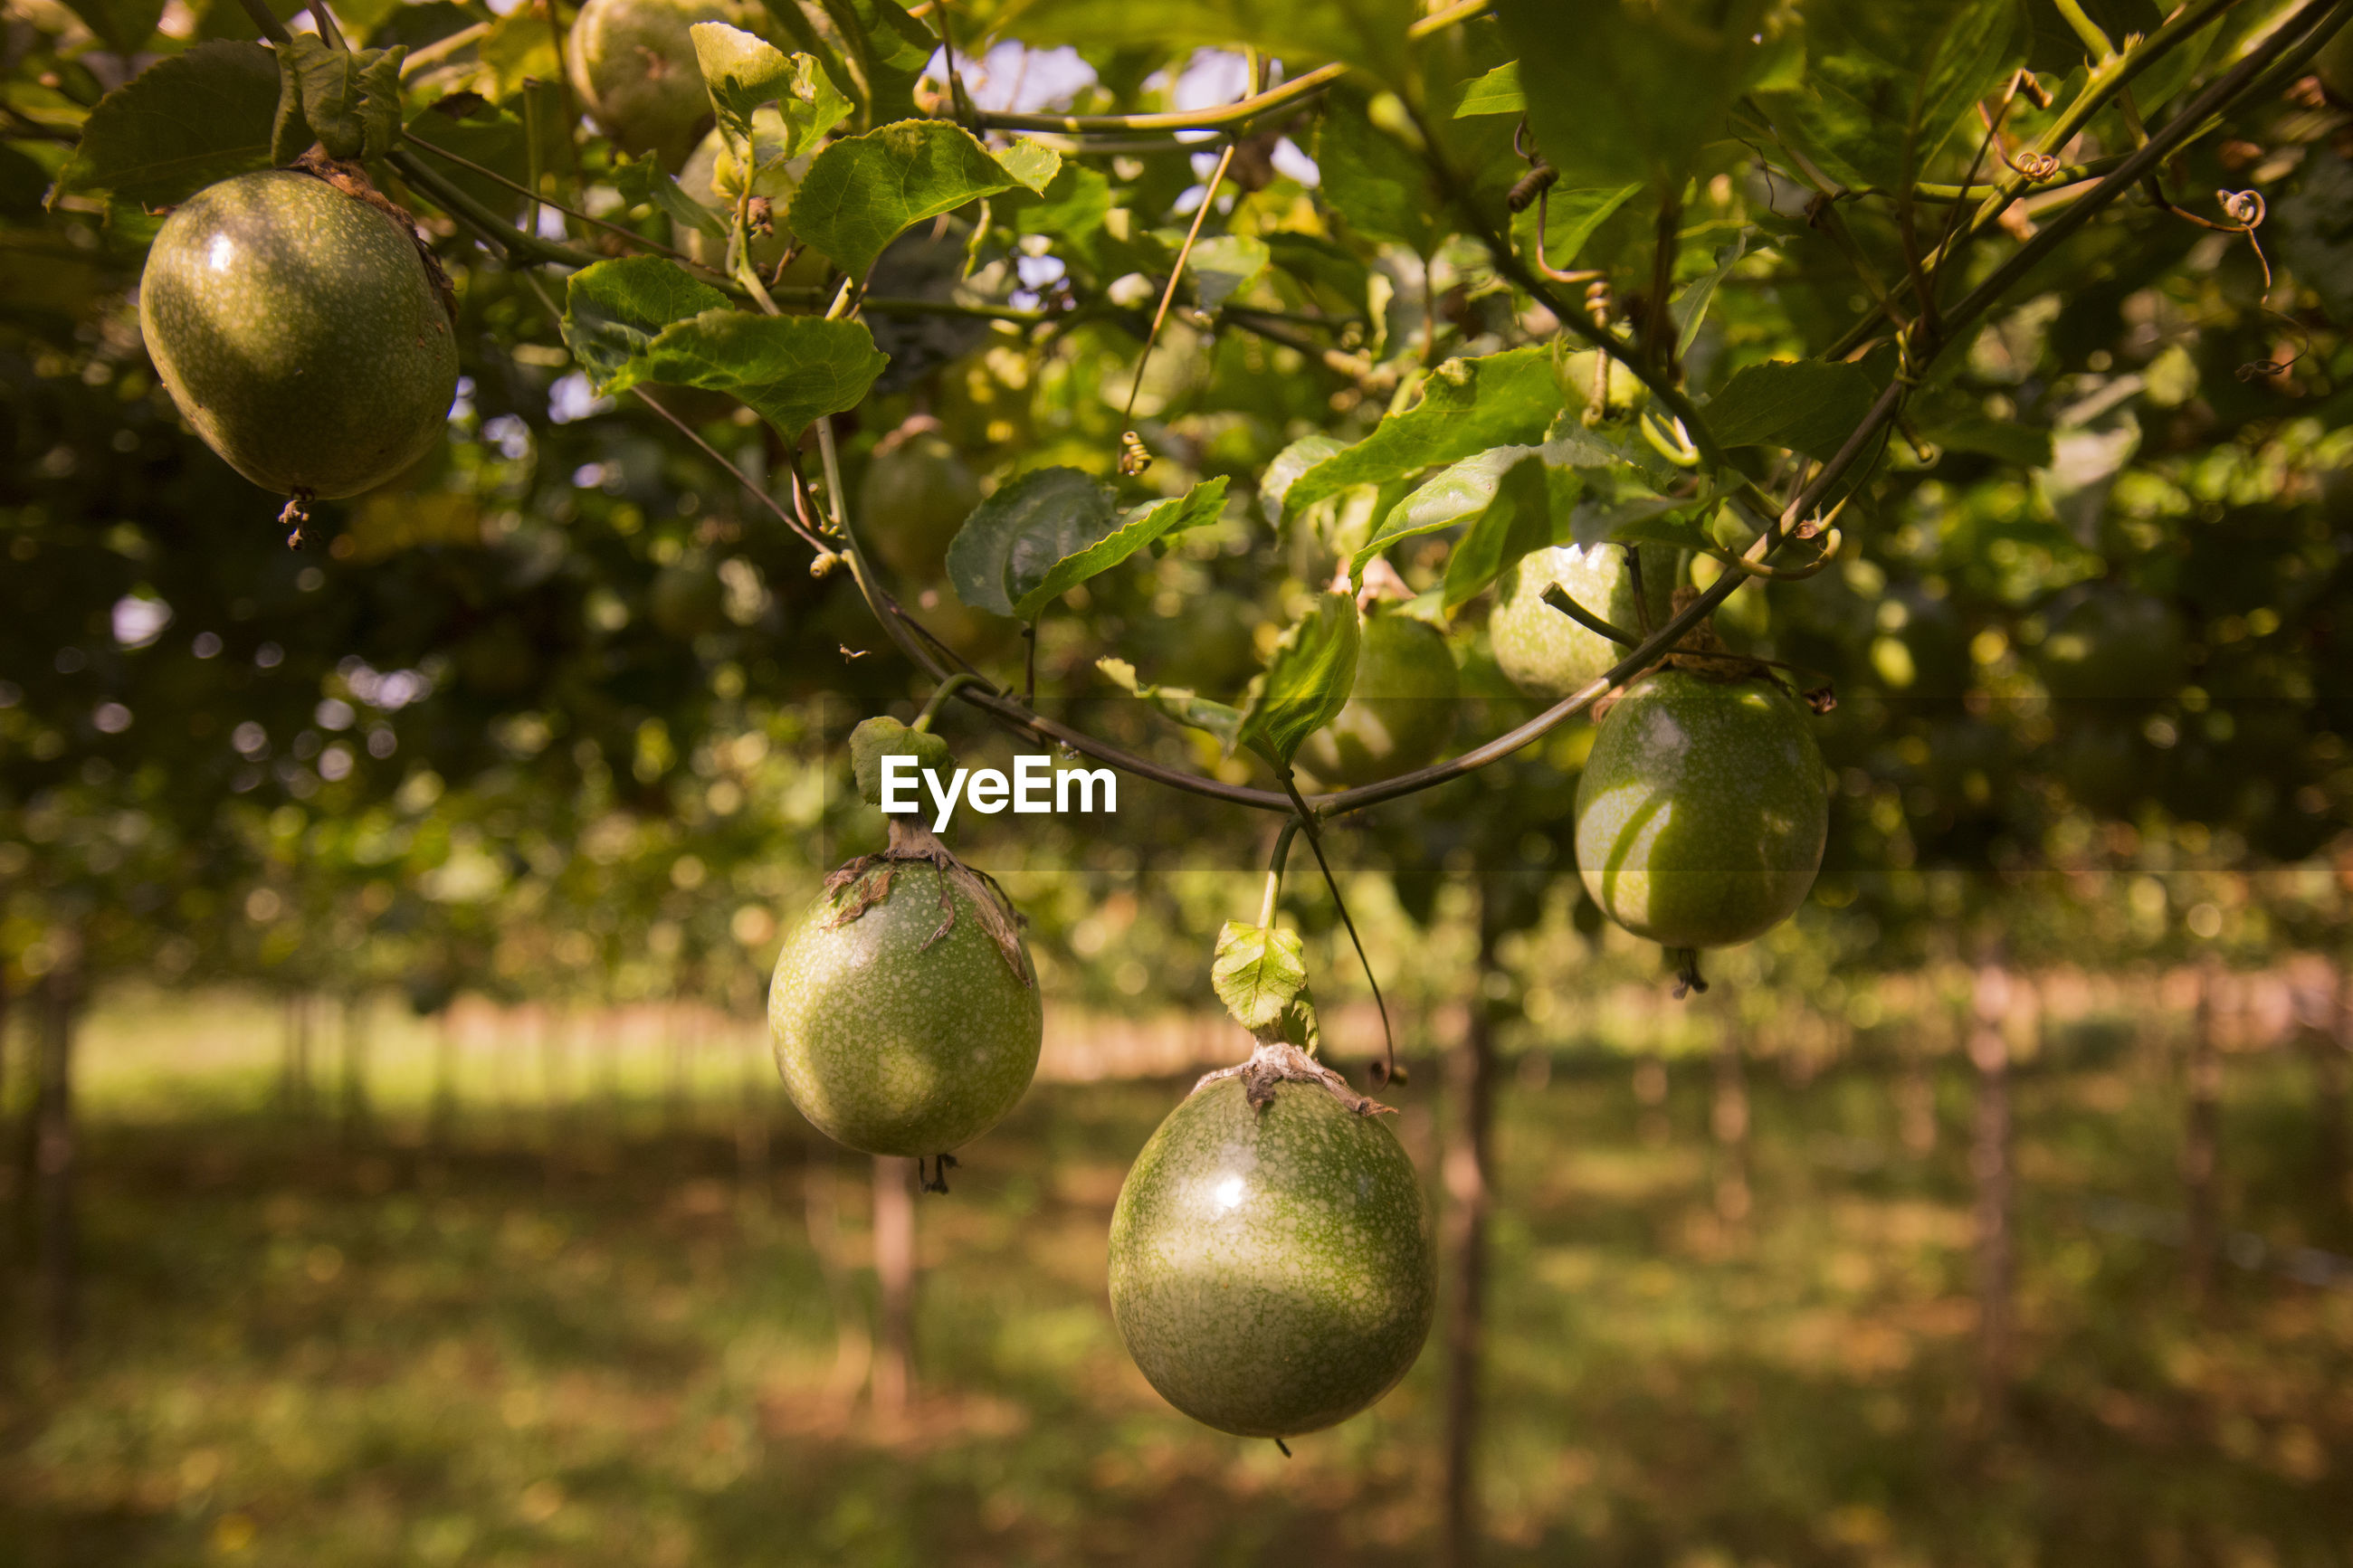 Fruits growing on tree over field